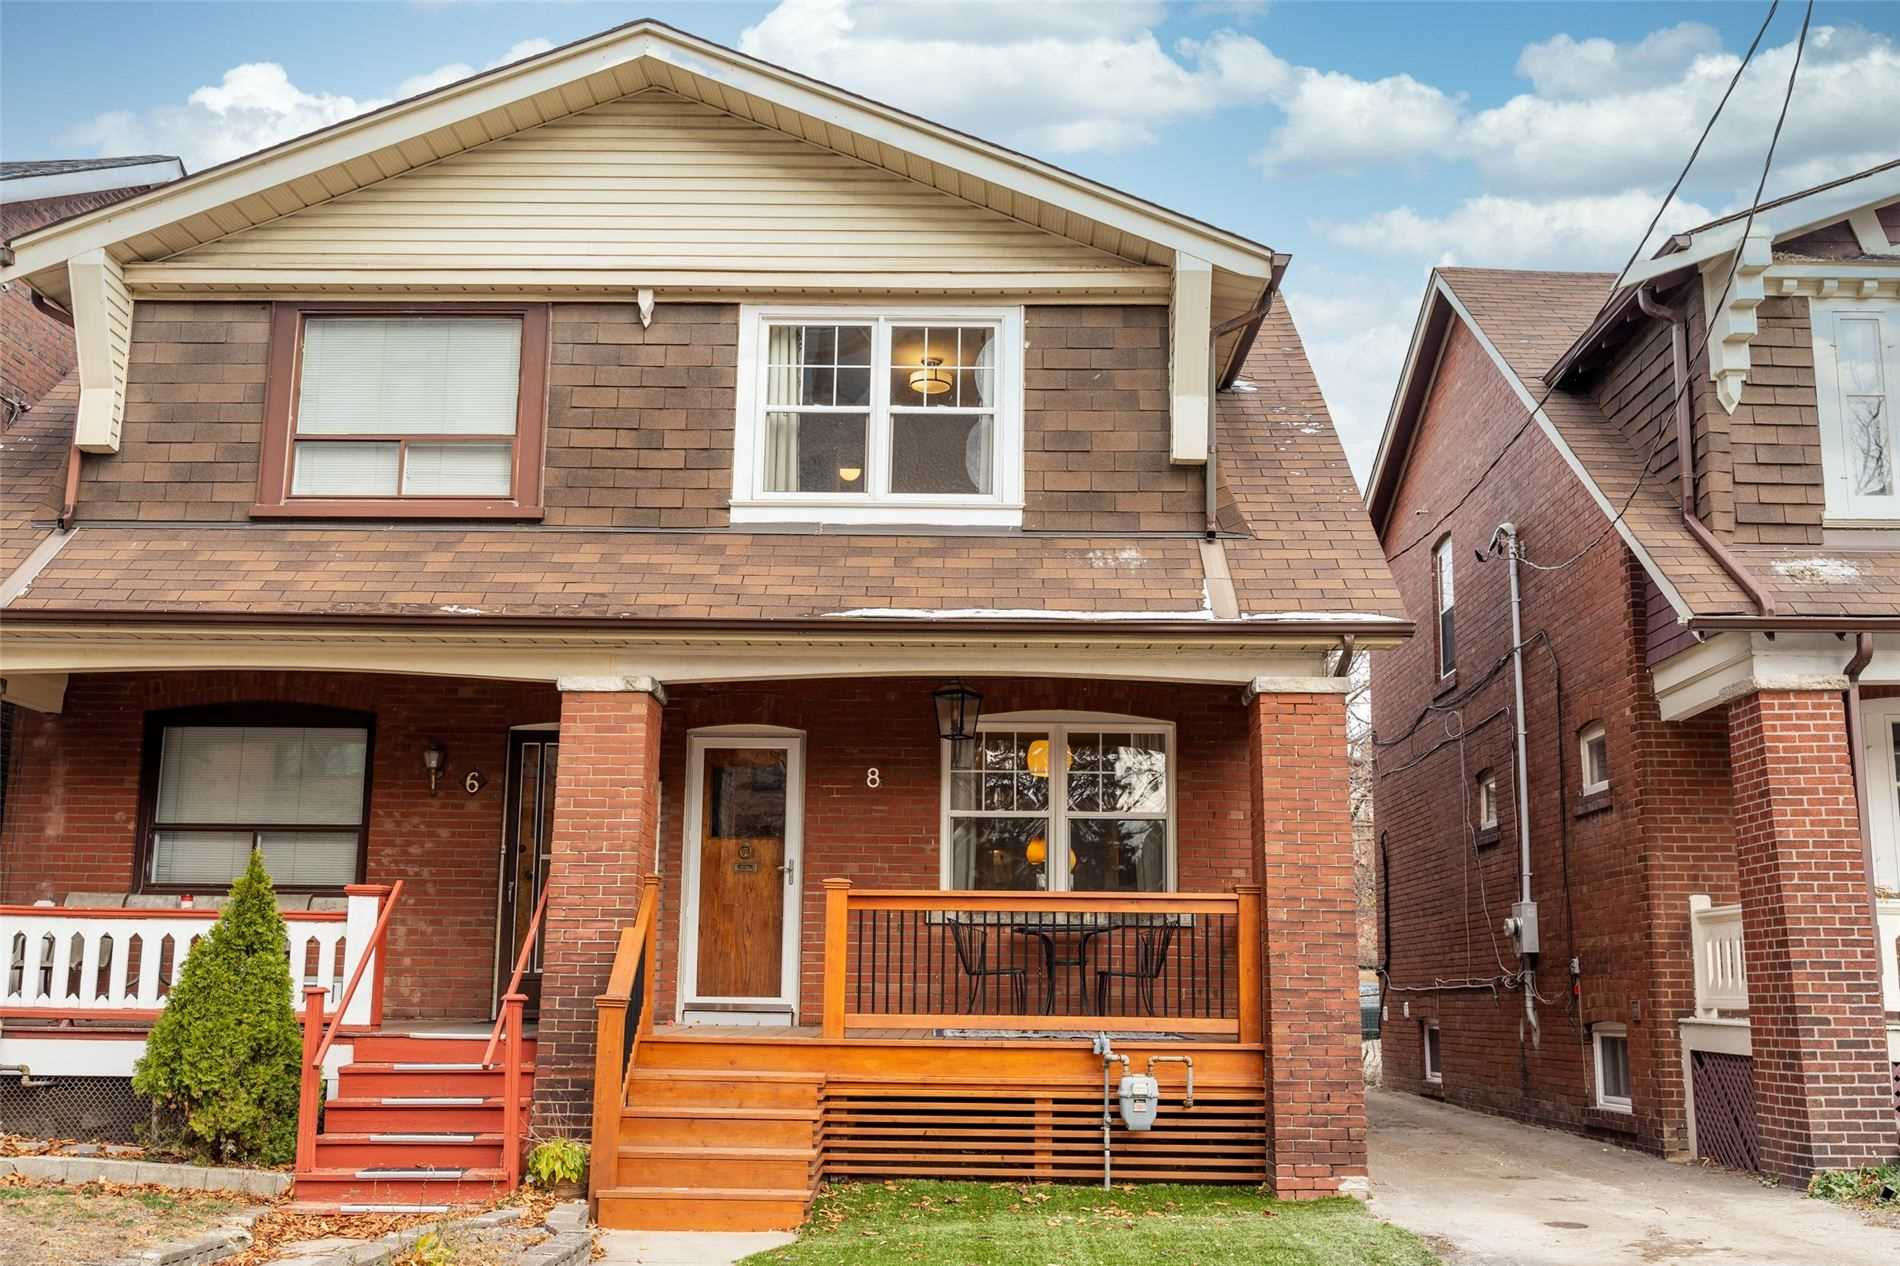 8-dearbourne-ave